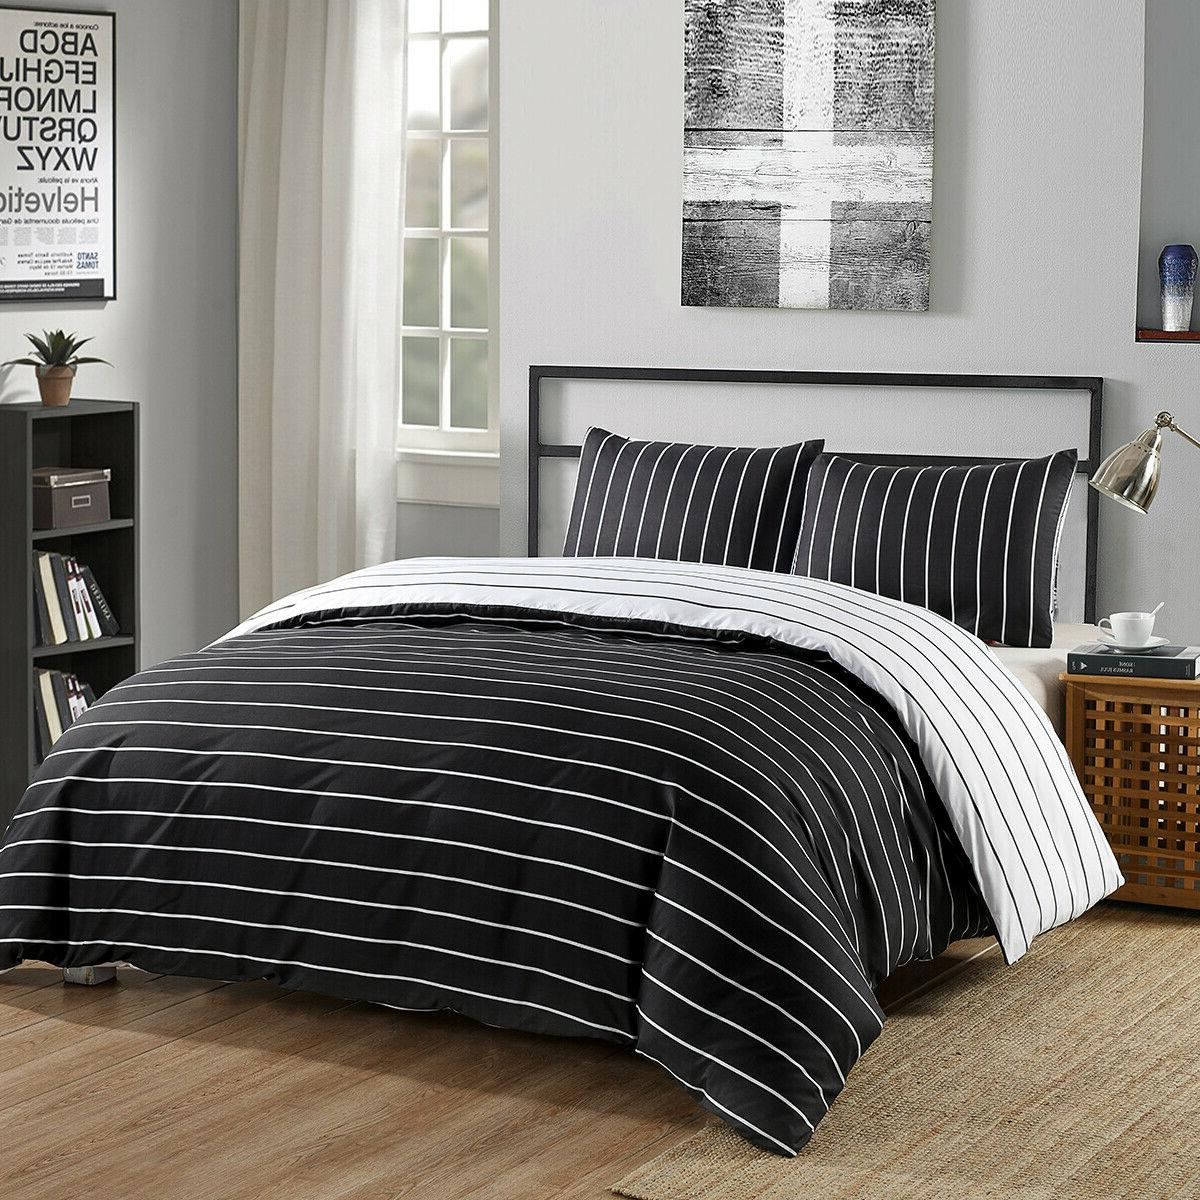 Striped Duvet Cover Sets Bedding For Boys Mens Kids Bed 7 co